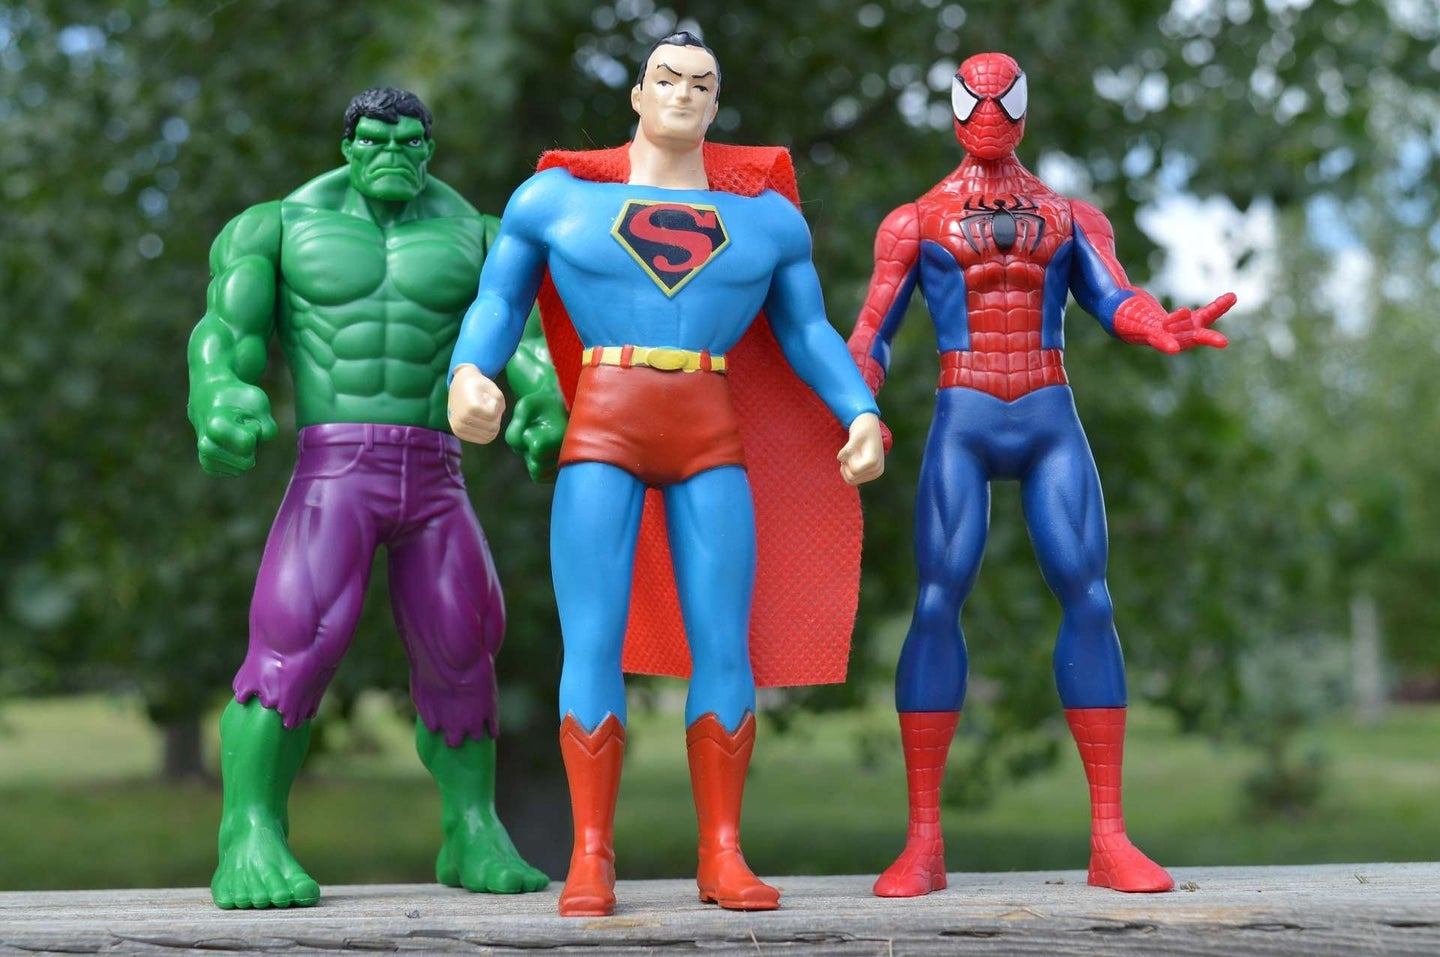 Superheroes offer lessons on science and technology.